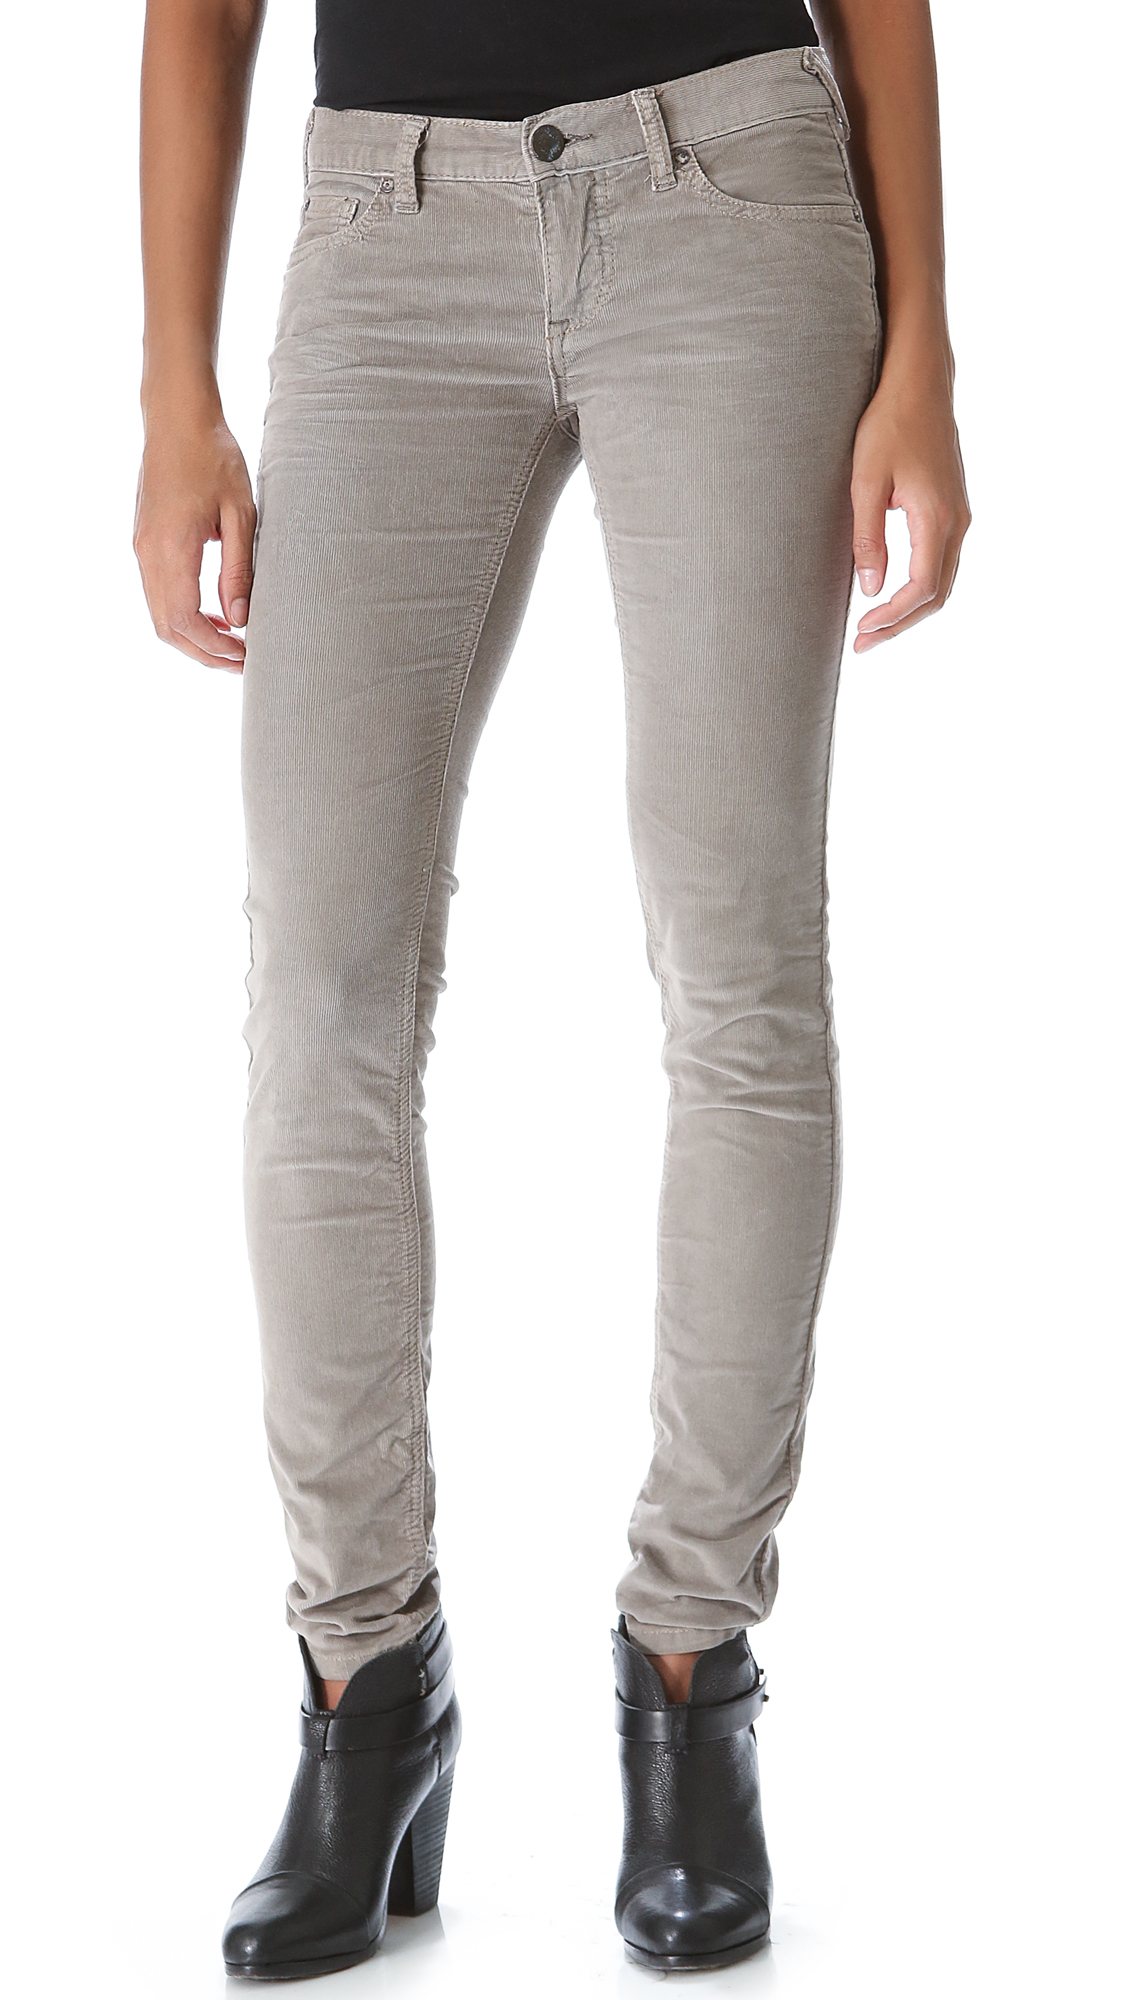 bde1107c4397 Free People Skinny Corduroy Pants